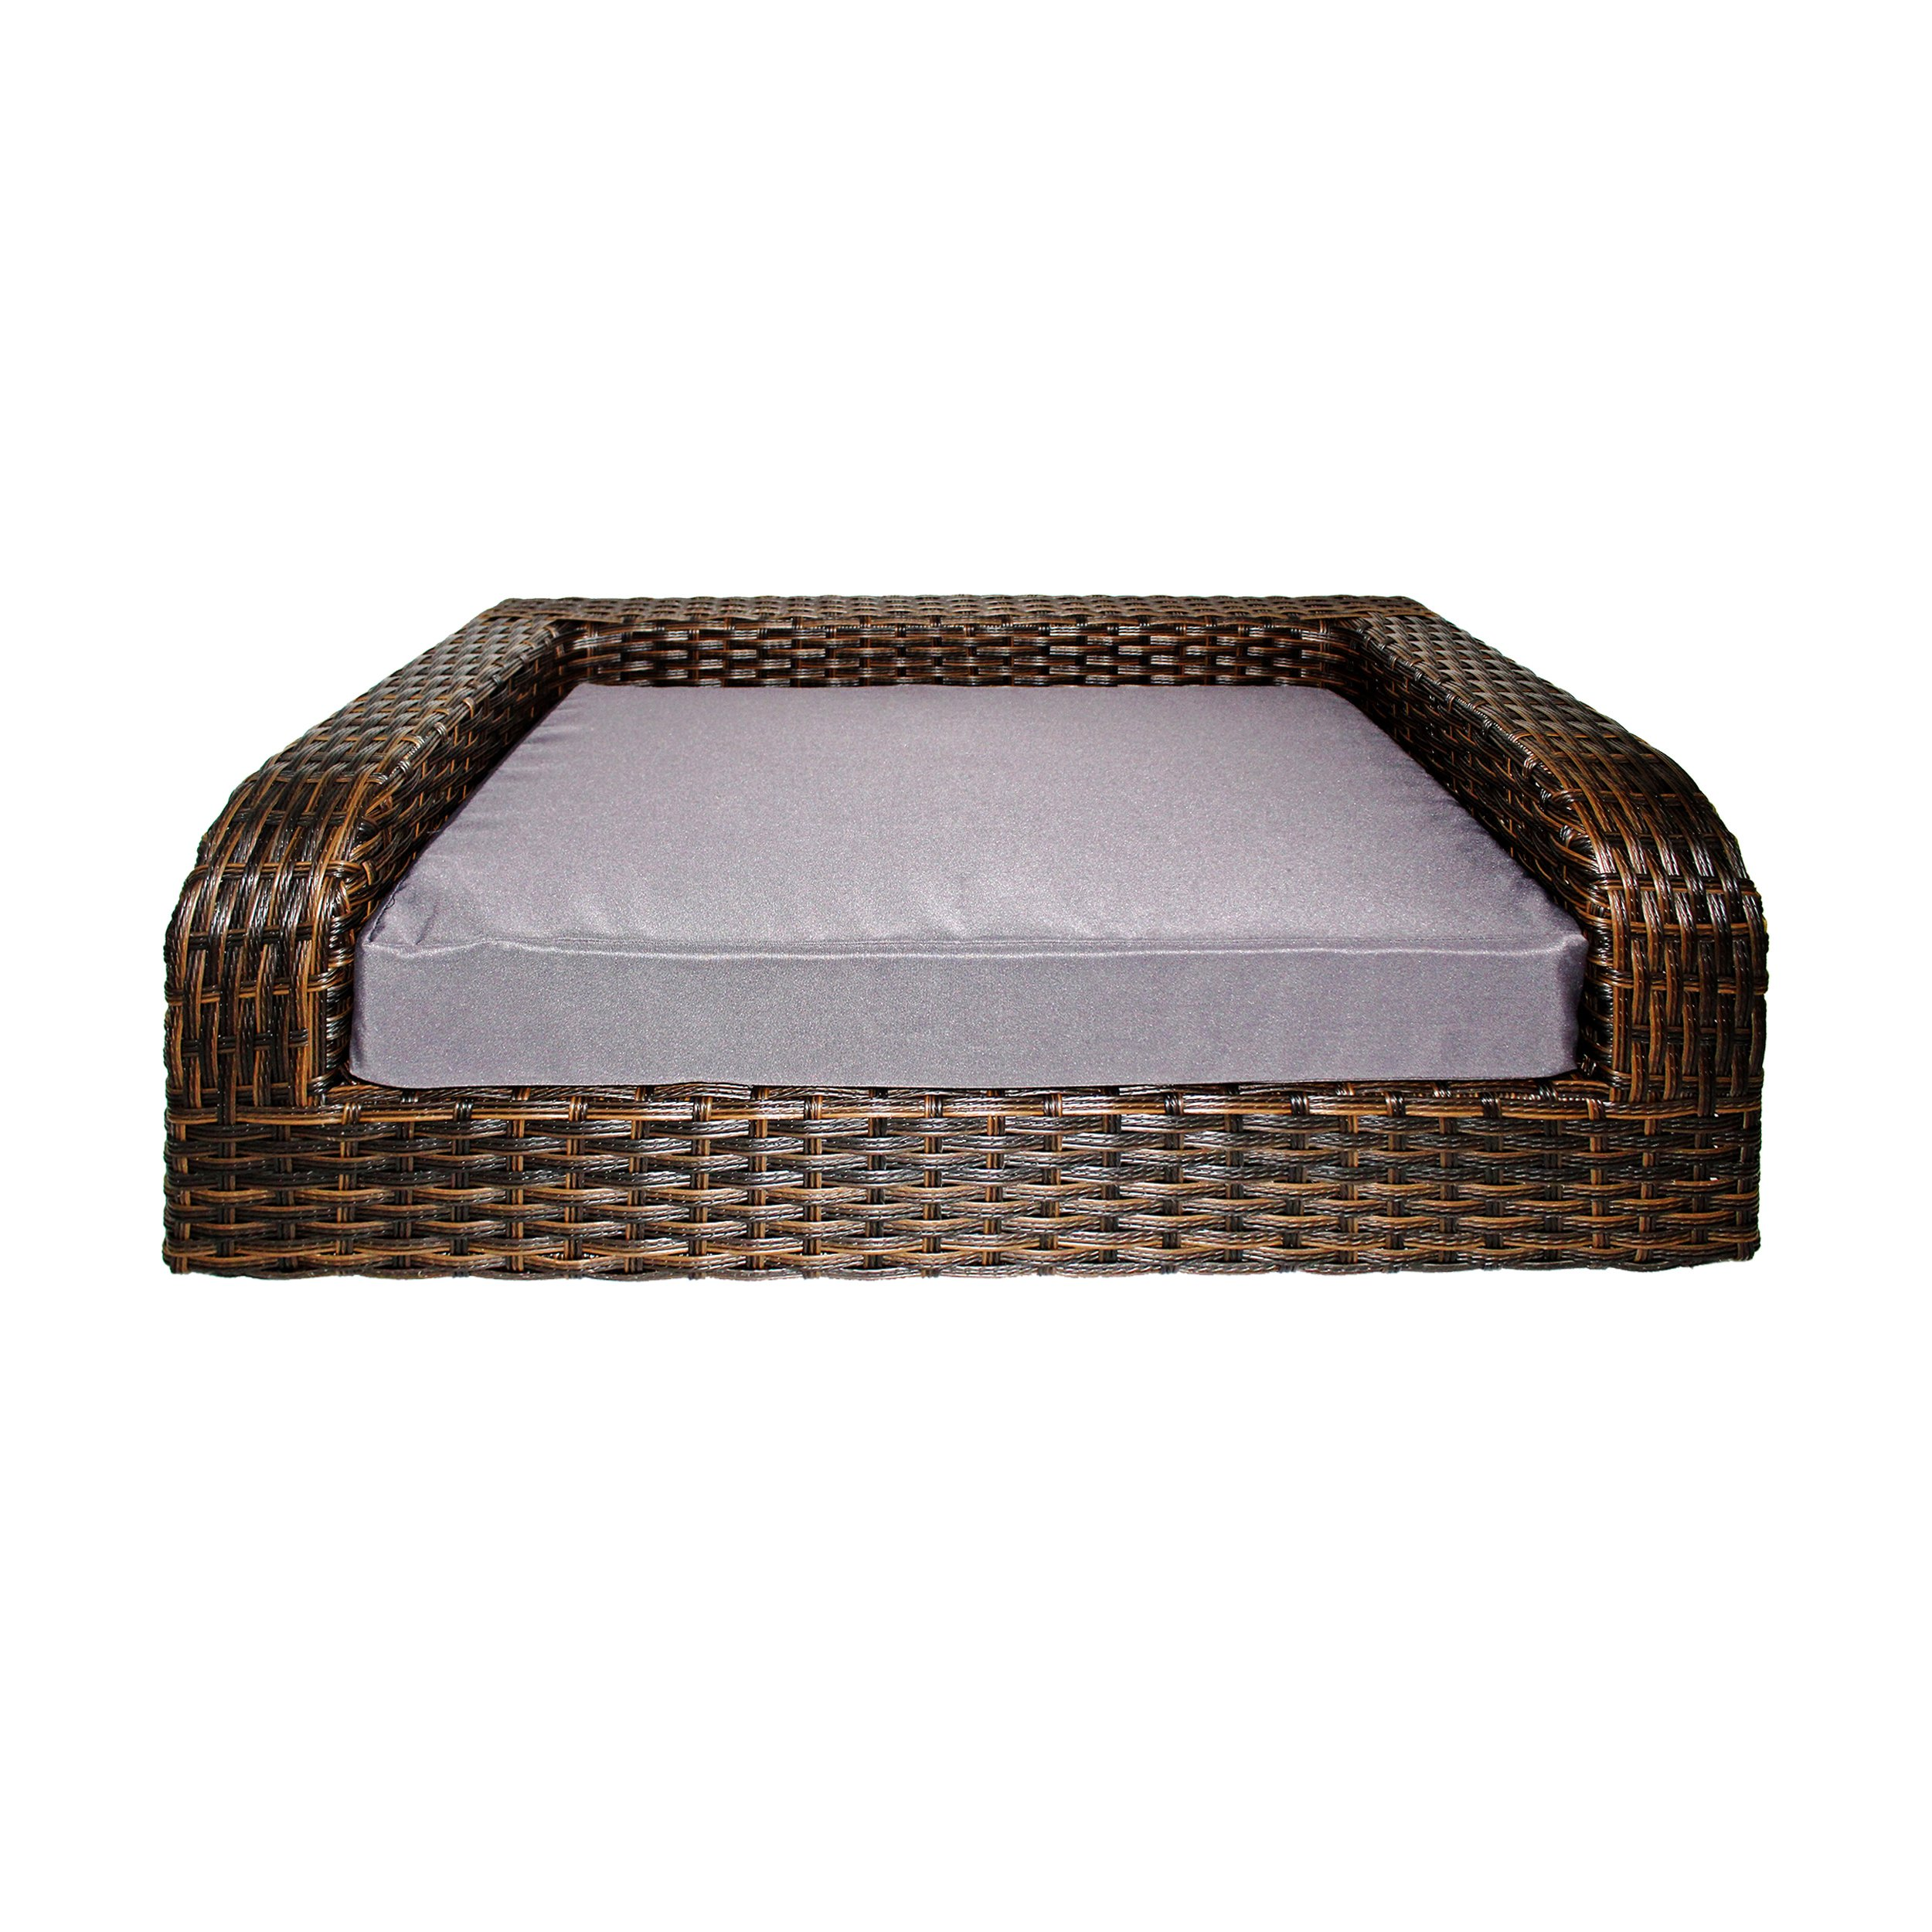 Iconic Pet Rattan/Wicker Pet Sofa Bed - Sofa Made of Woven Palm Stems of Rattan with Metal Frame, Indoor/Outdoor Sofa and Water Resistant Cushion Cover, Elegant Pet Bed for Dogs/Cats up to 80 lbs